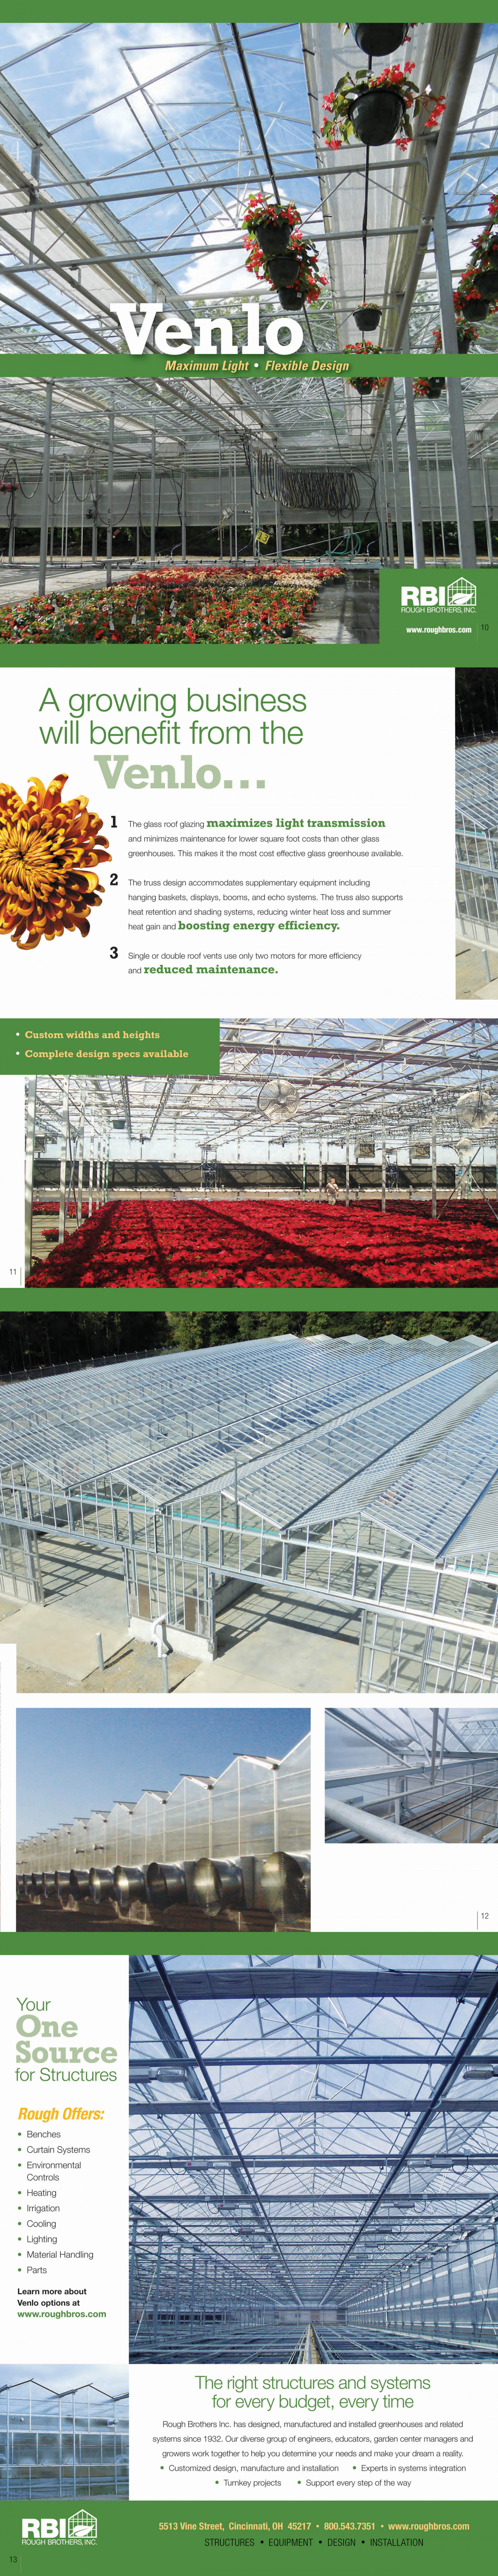 Venlo Greenhouses Infographic